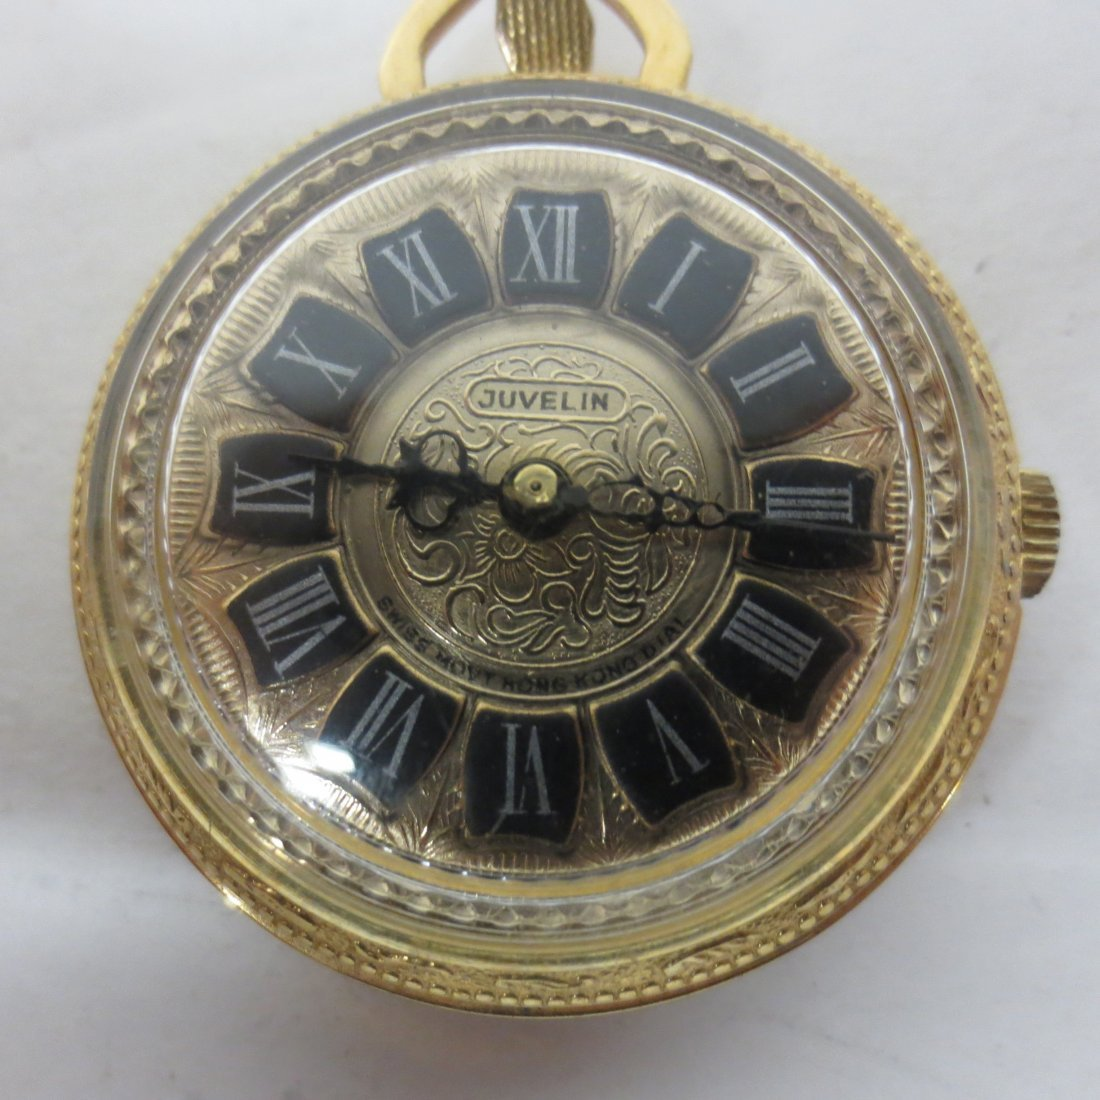 Pocket Watches, Lucerne, Genovit De Luxe, Navarre, - 5